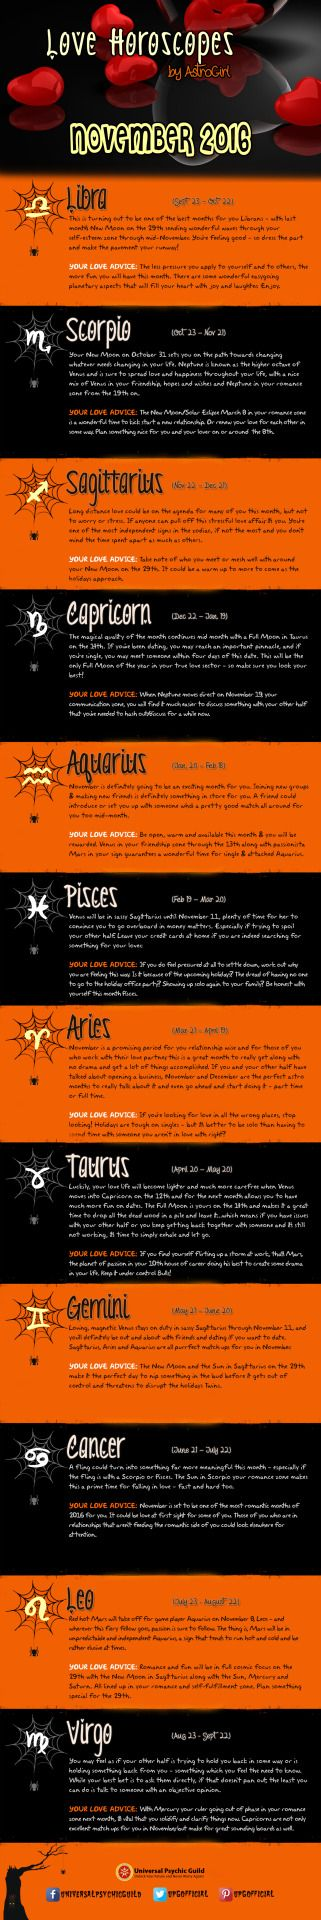 #INFOGRAPHIC: WHAT THE #LOVEPLANETS ARE UP TO IN NOVEMBER 2016… • Sun in Scorpio through November 22 • Mercury in Scorpio through November 13 then in Sag through December 3 • Venus in Sagittarius through November 13, then in Capricorn through December 8 • Mars in Capricorn through November 10, then in Aquarius • Jupiter in Libra • Saturn in Sagittarius • Neptune moves direct in  • Pisces on November 20 • #FullMoon in Taurus – Nov 14 • #NewMoon in Sagittarius – November 29